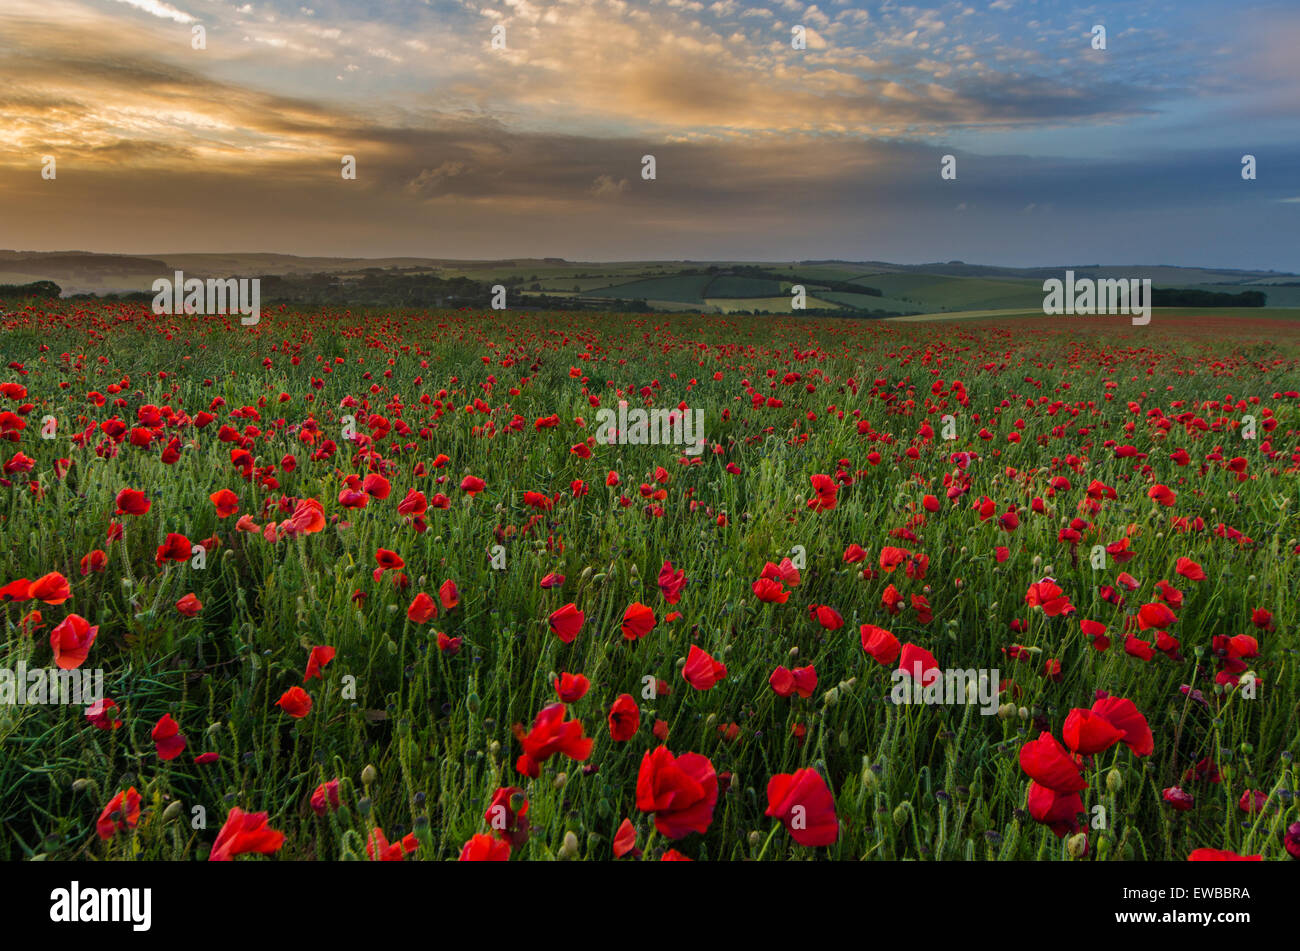 Poppy field at South Downs National Park, Brighton, West Sussex, England, UK Stock Photo